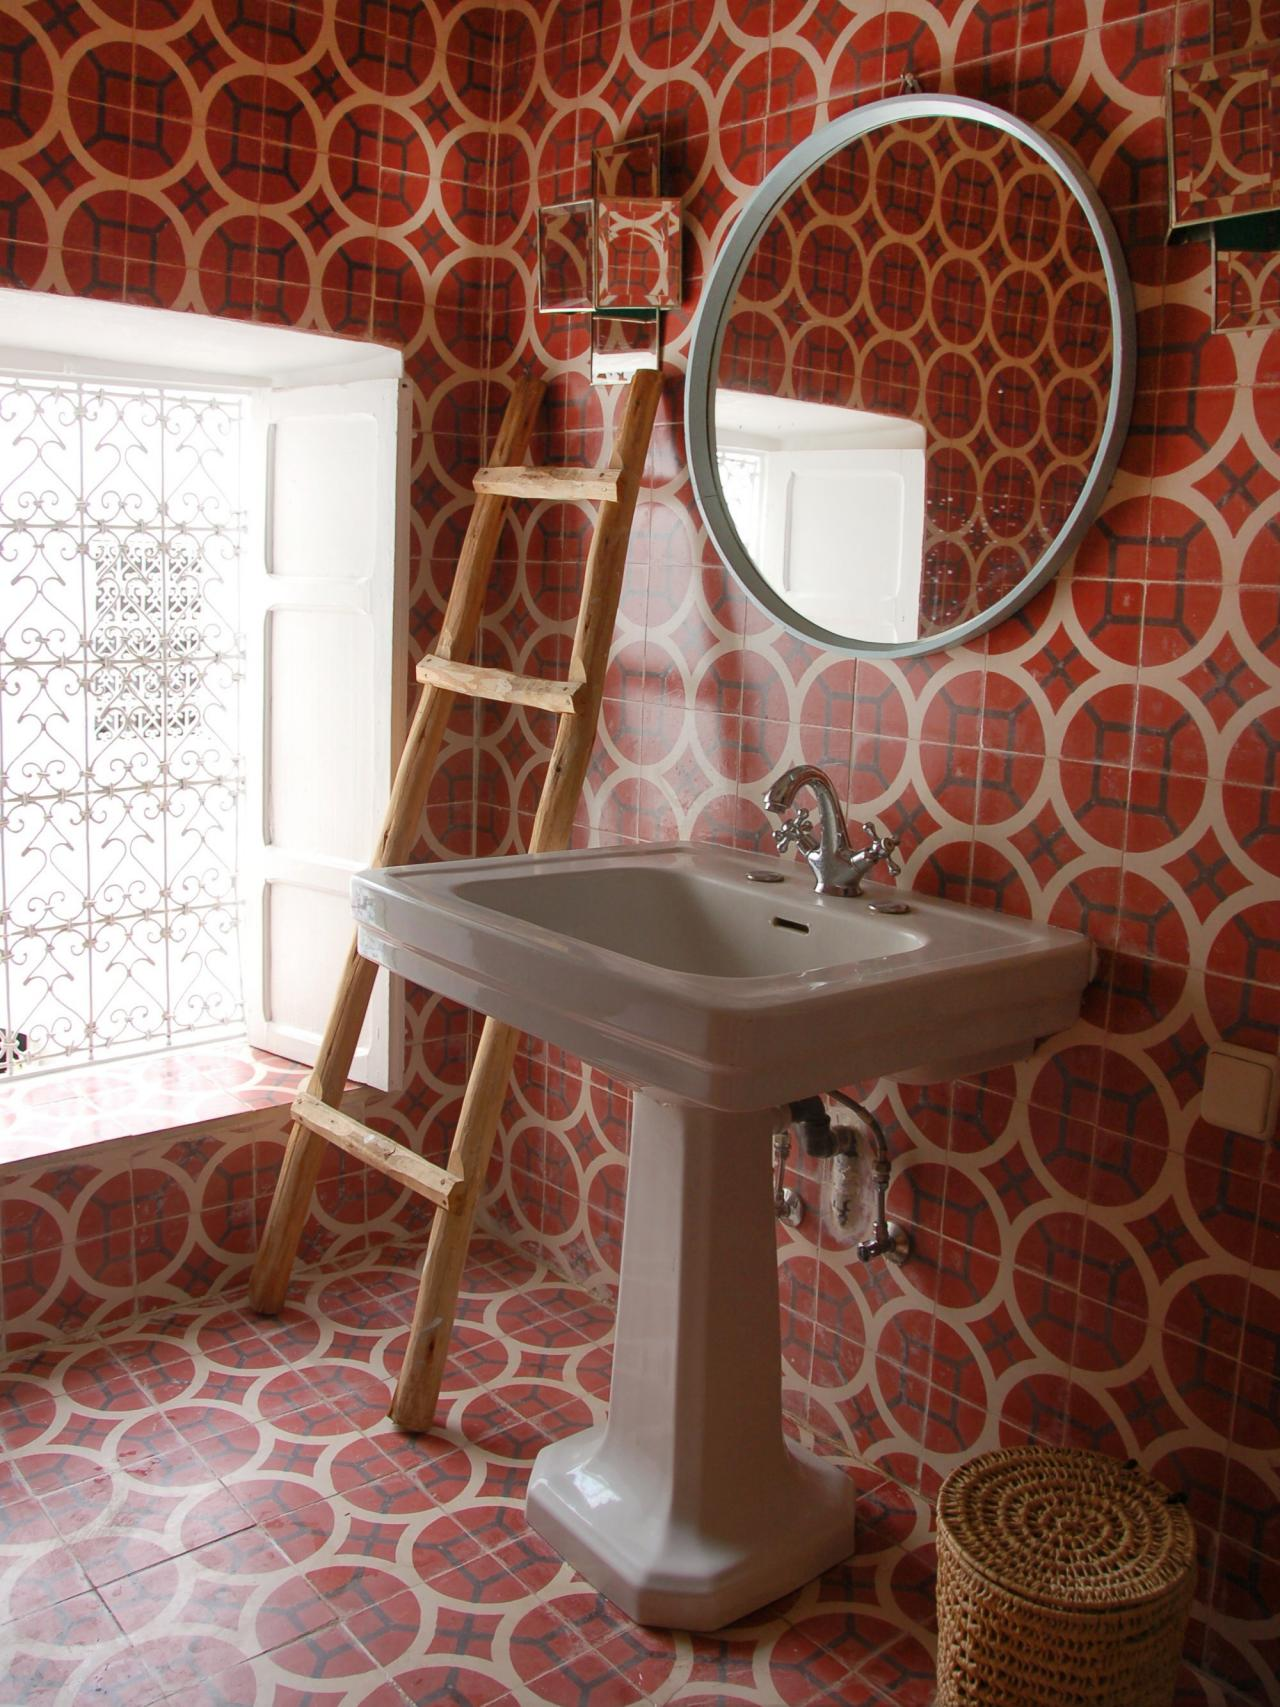 30 Magnificent Pictures And Ideas Of Burgundy Tiles In